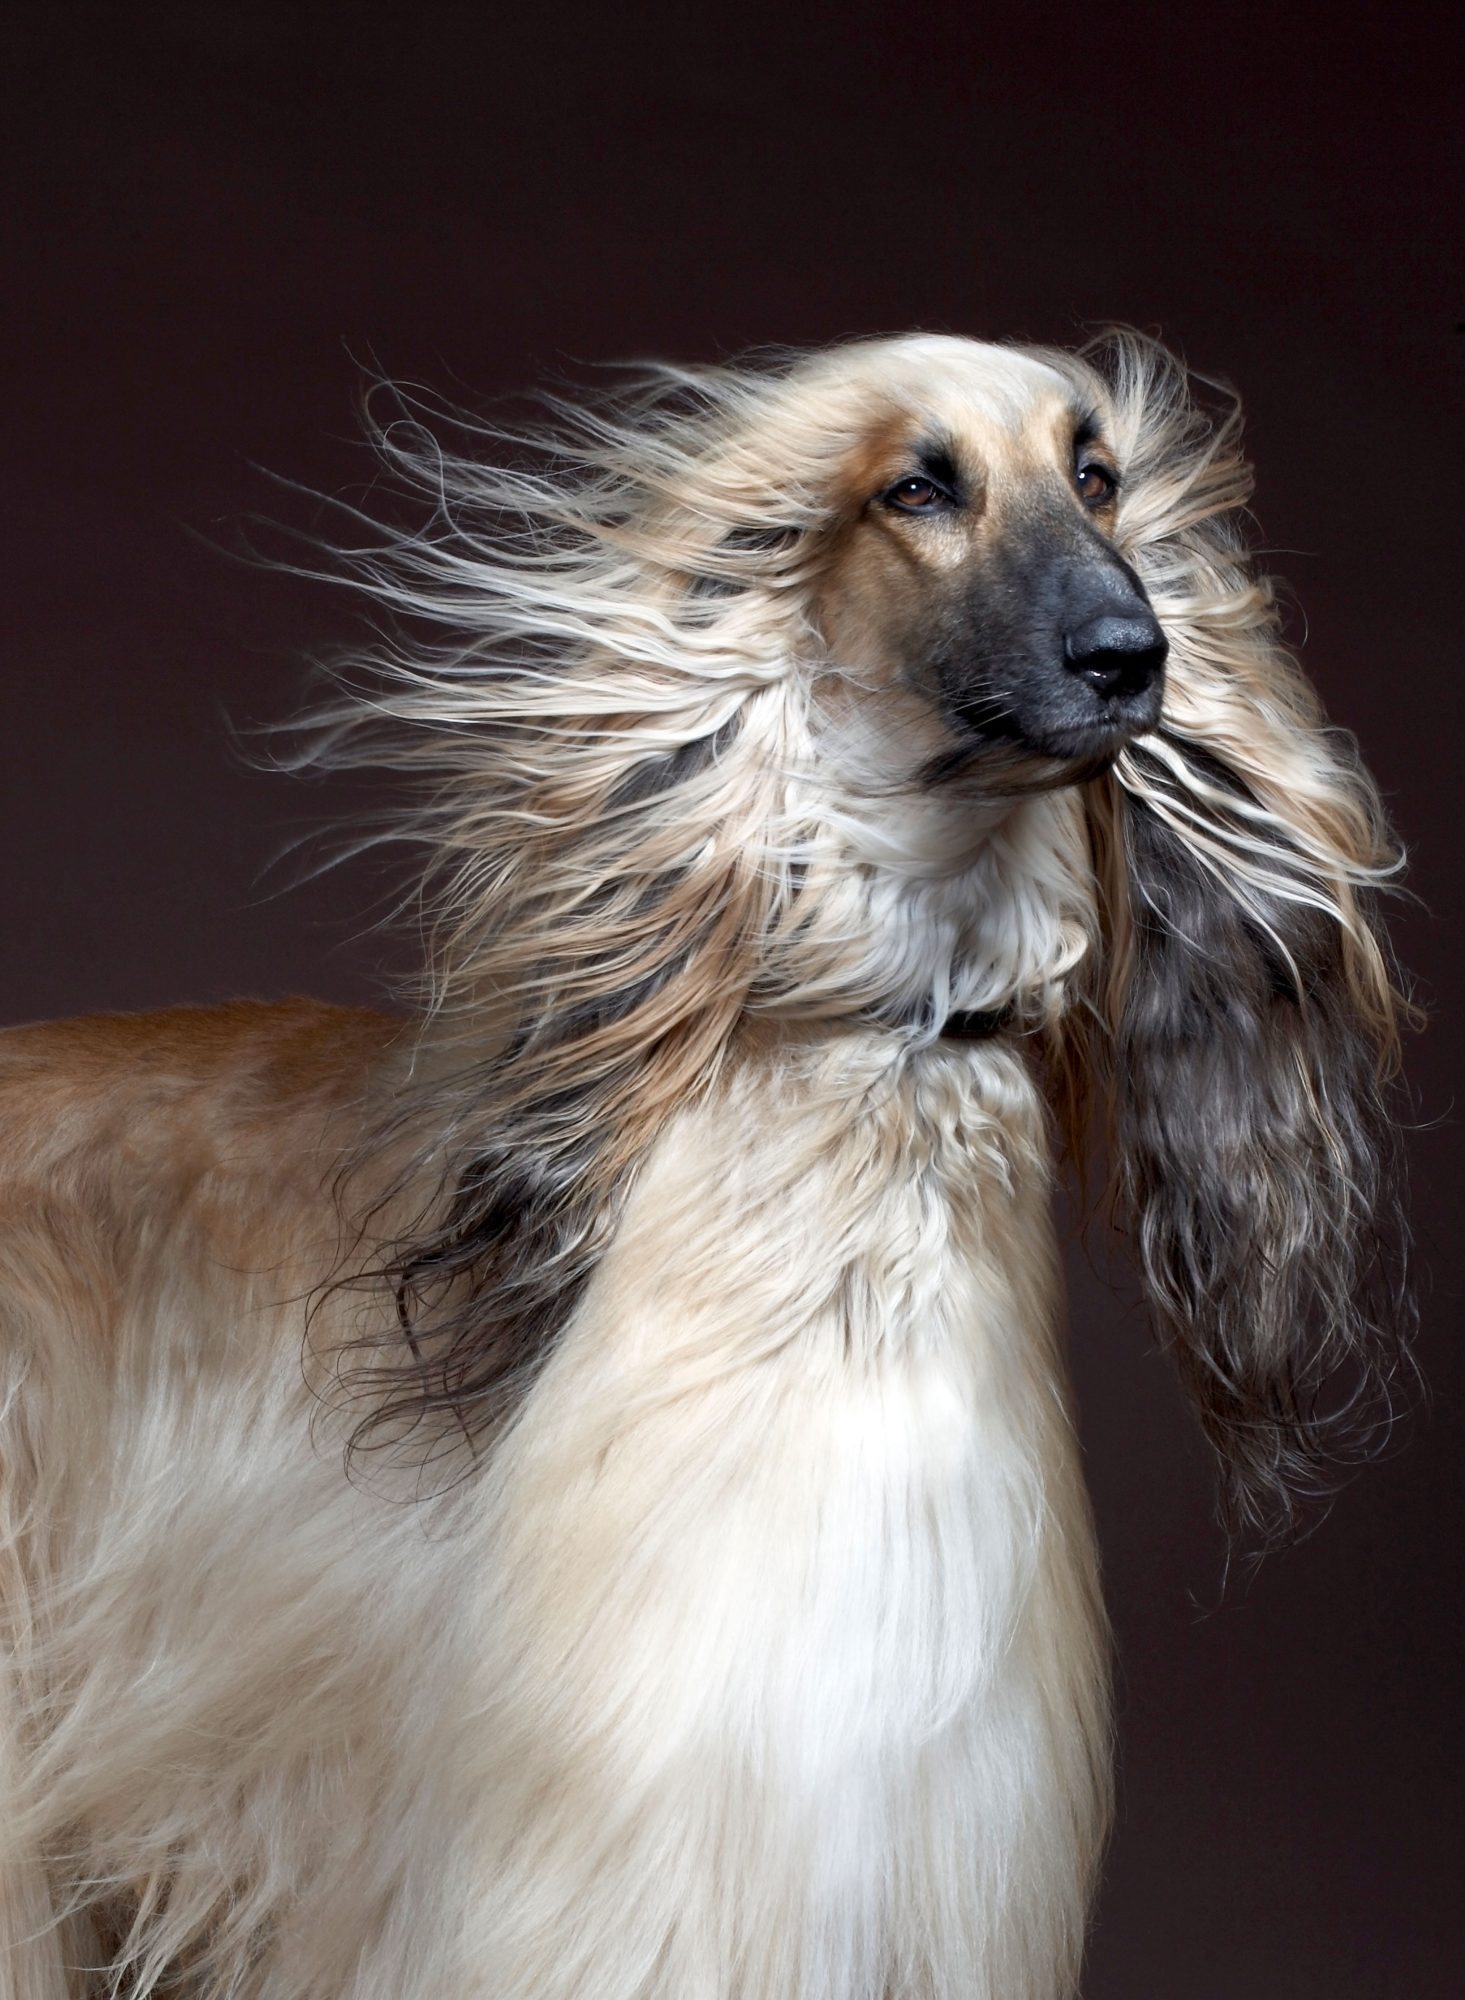 Afghan Hound with Hair Blowing in the Wind